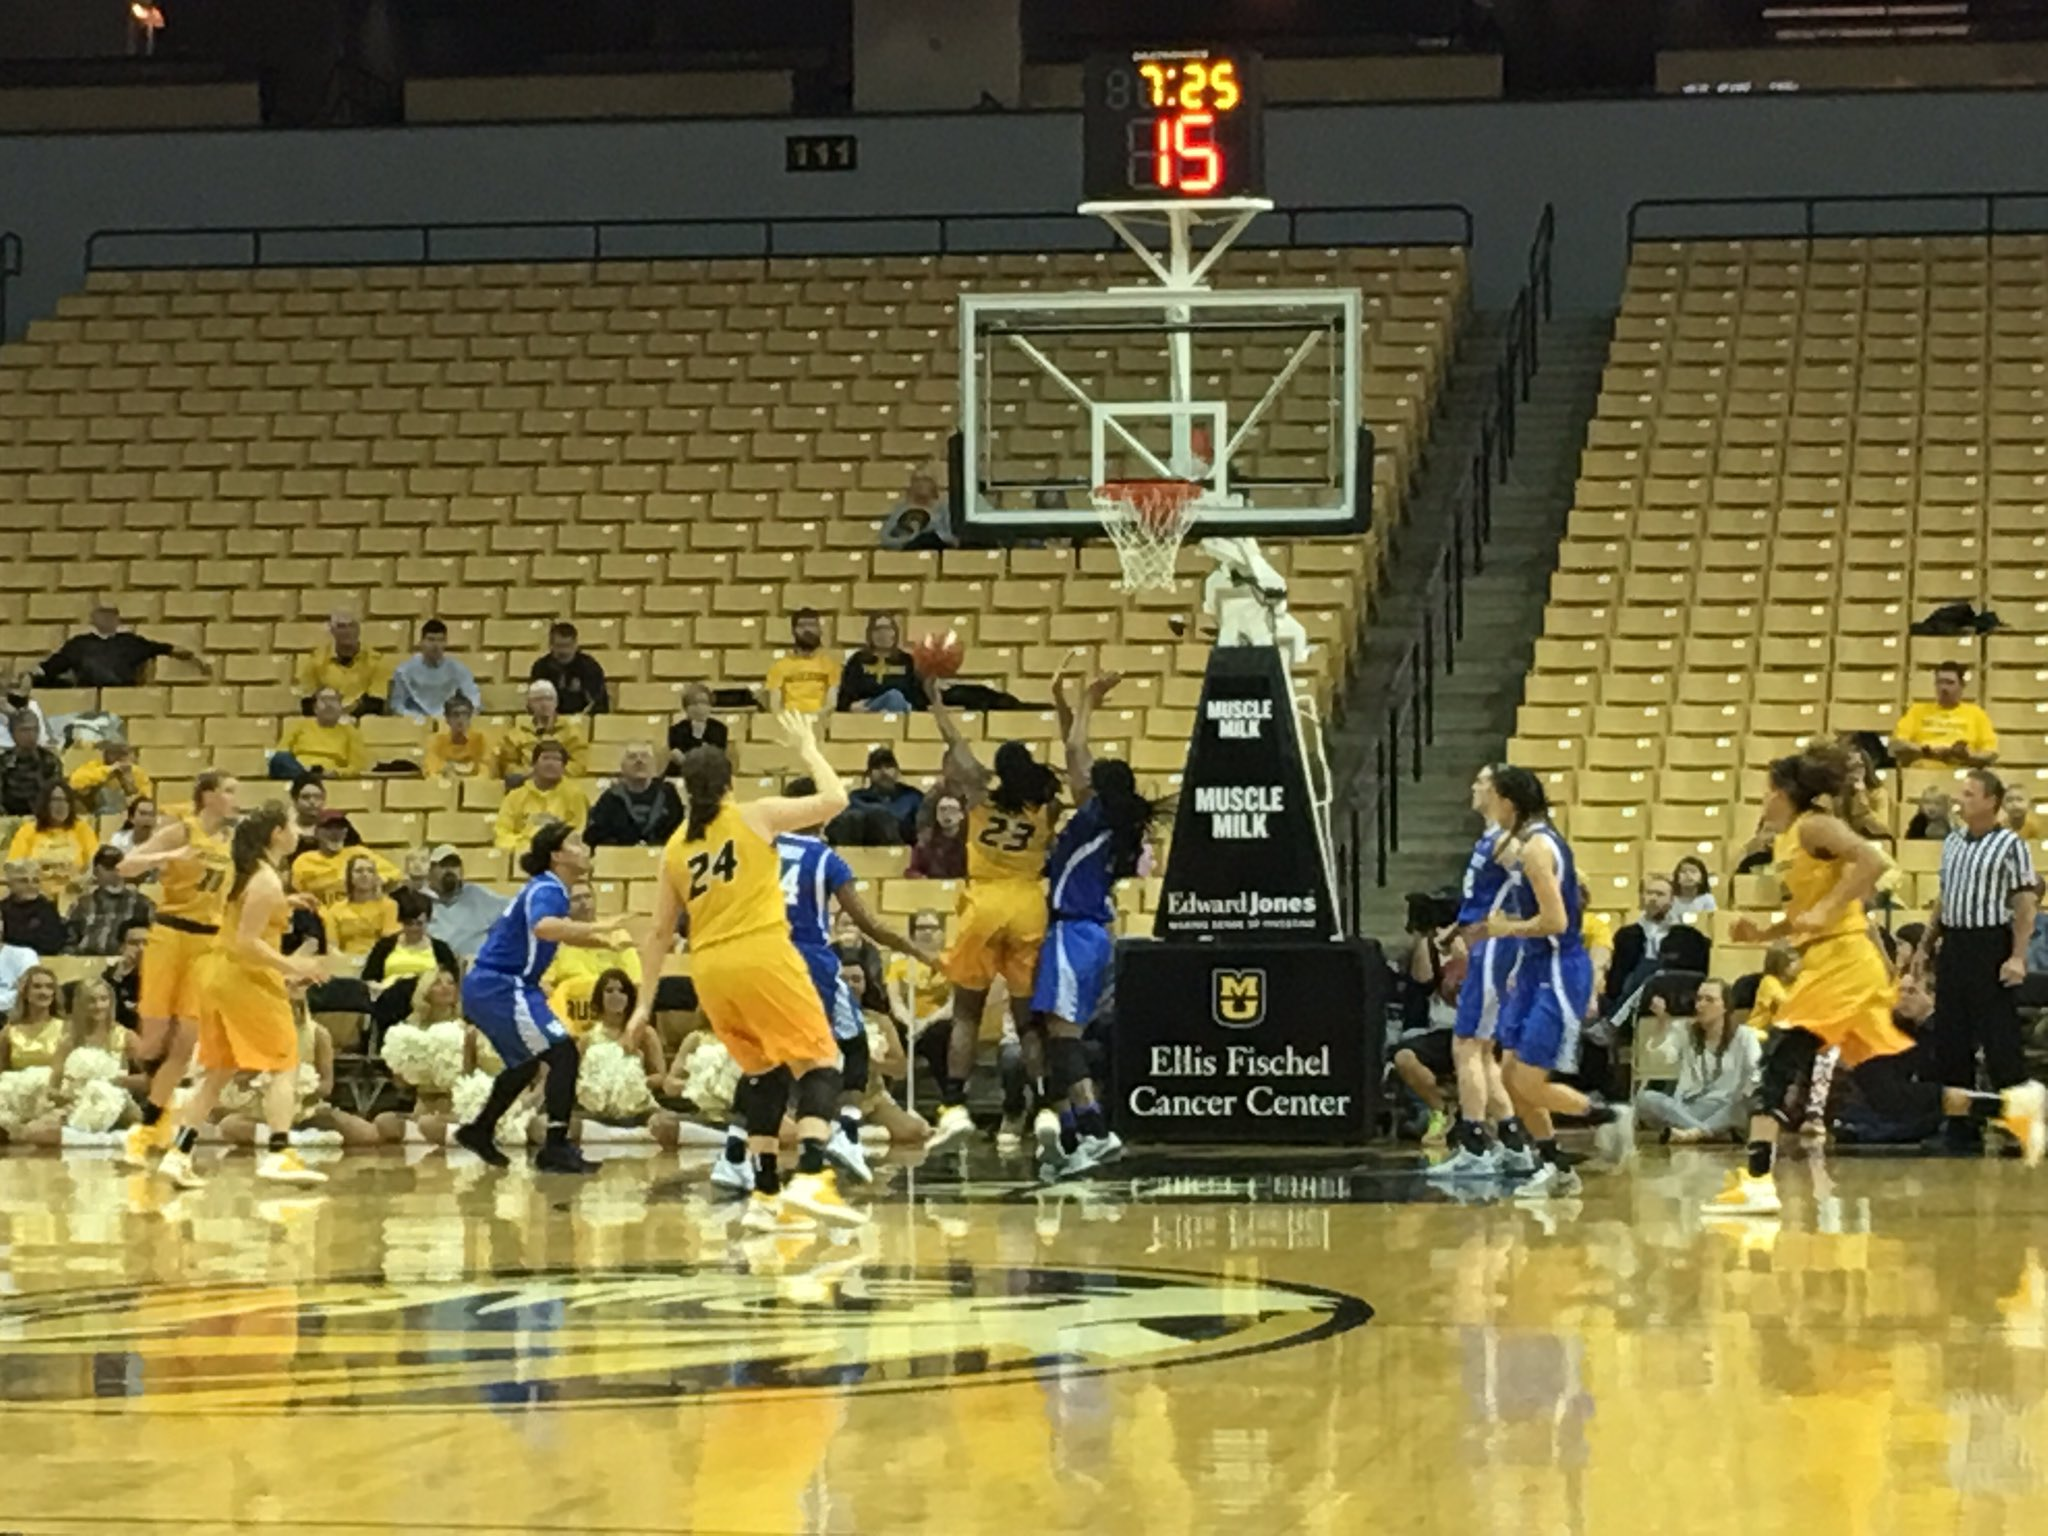 Team effort results in big victory for Mizzou women's basketball